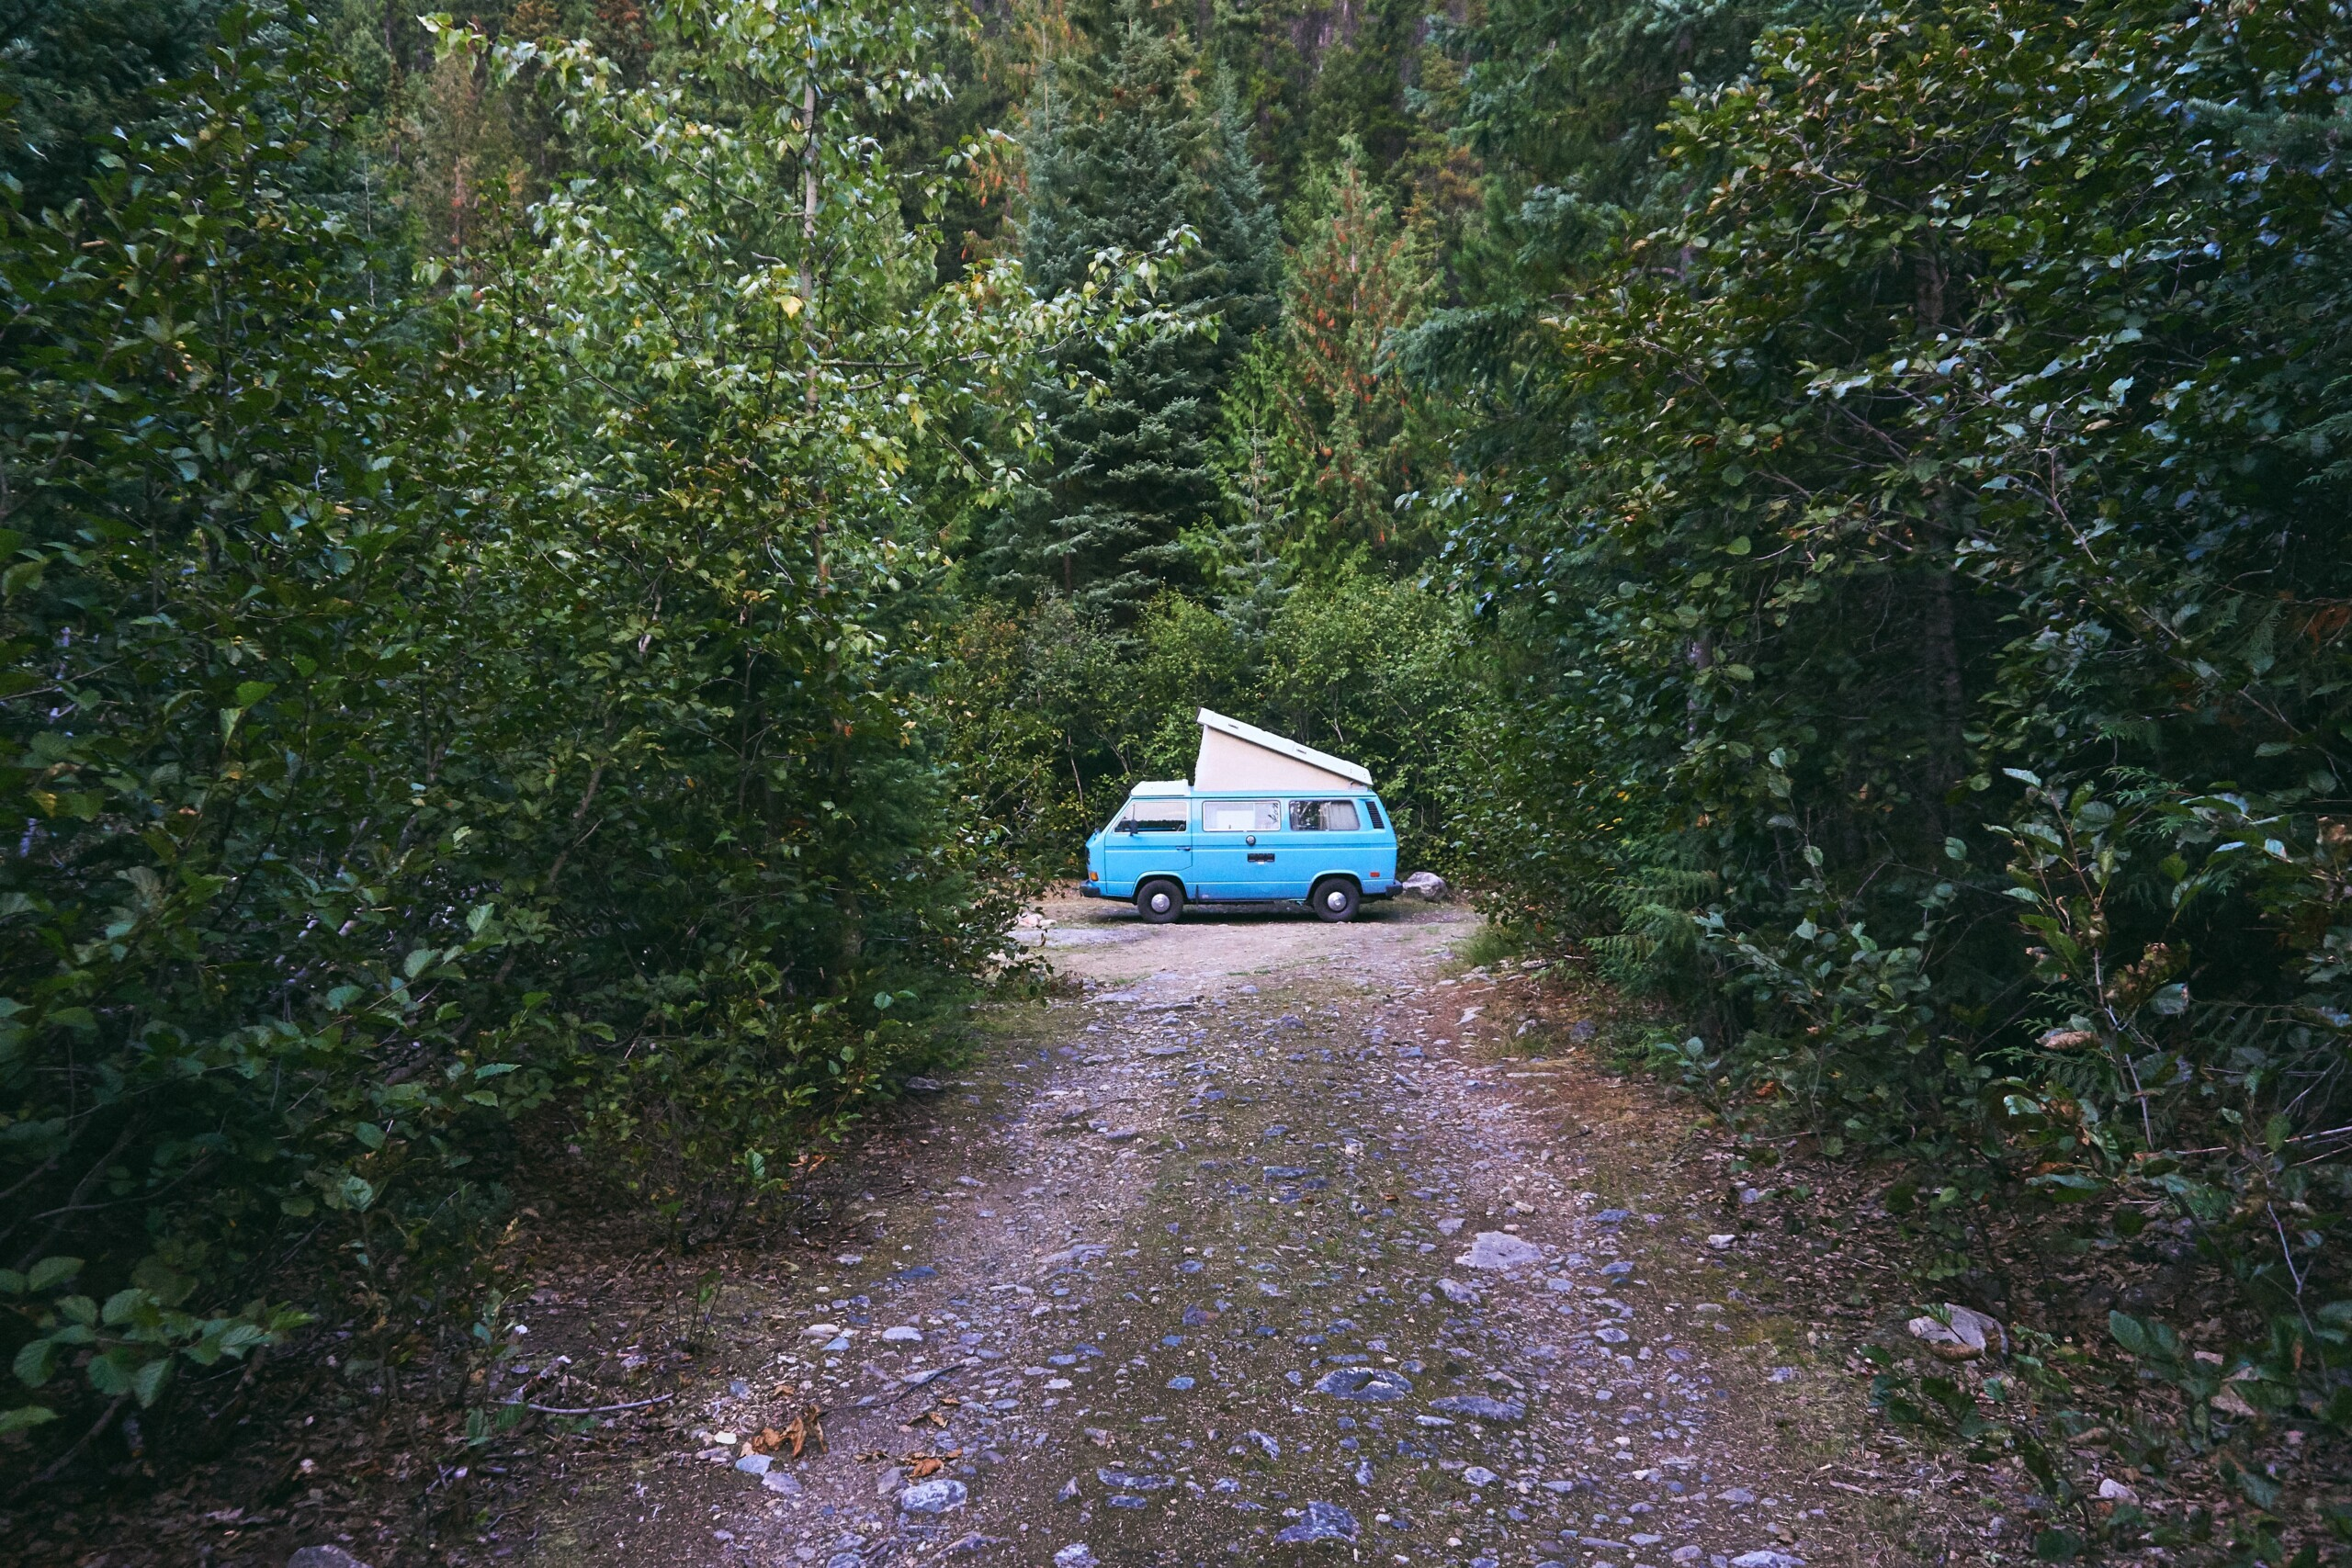 forest driveway with camping van